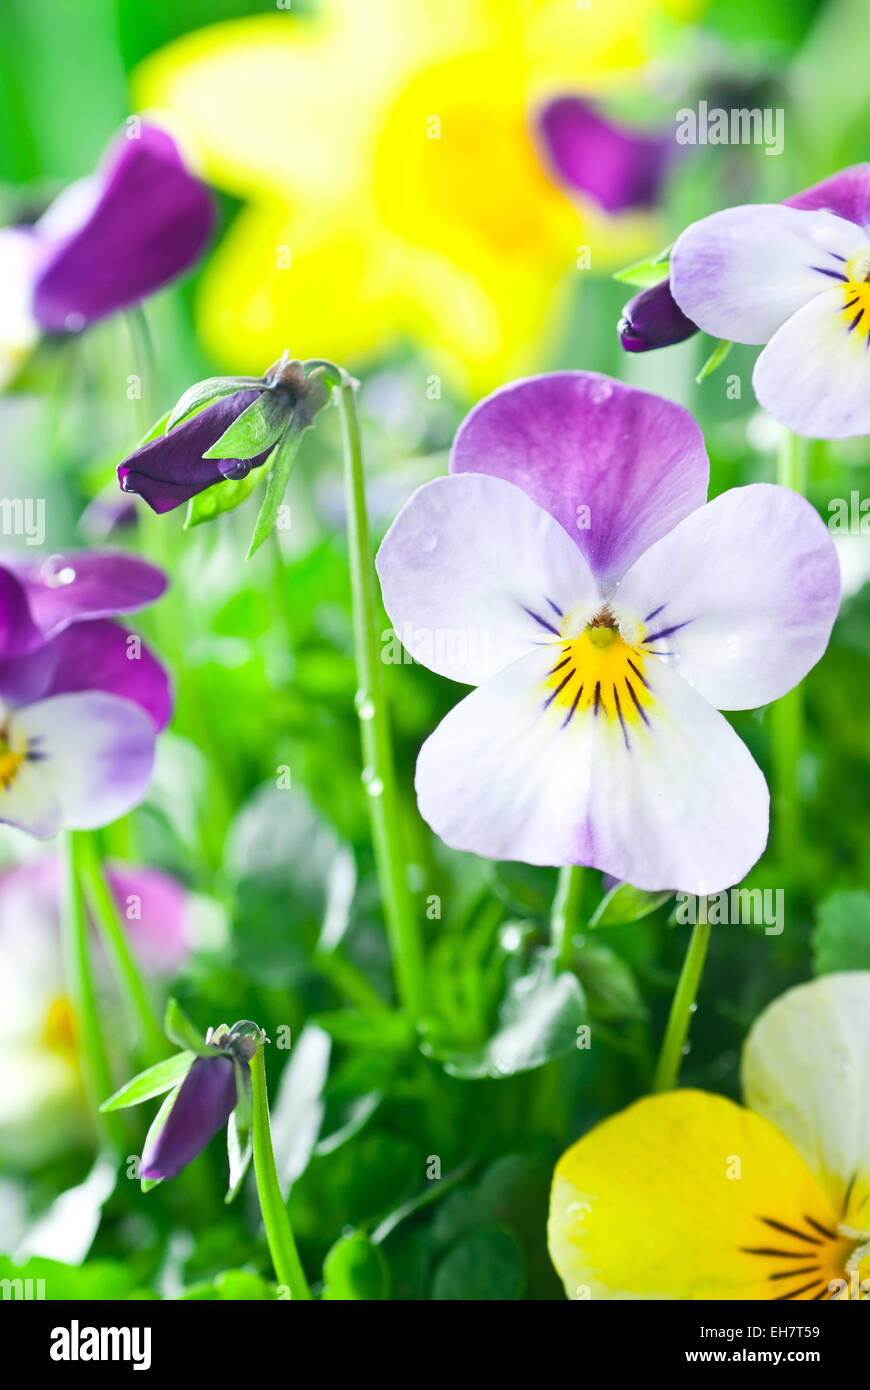 Purple and yellow pansies after the rain. - Stock Image